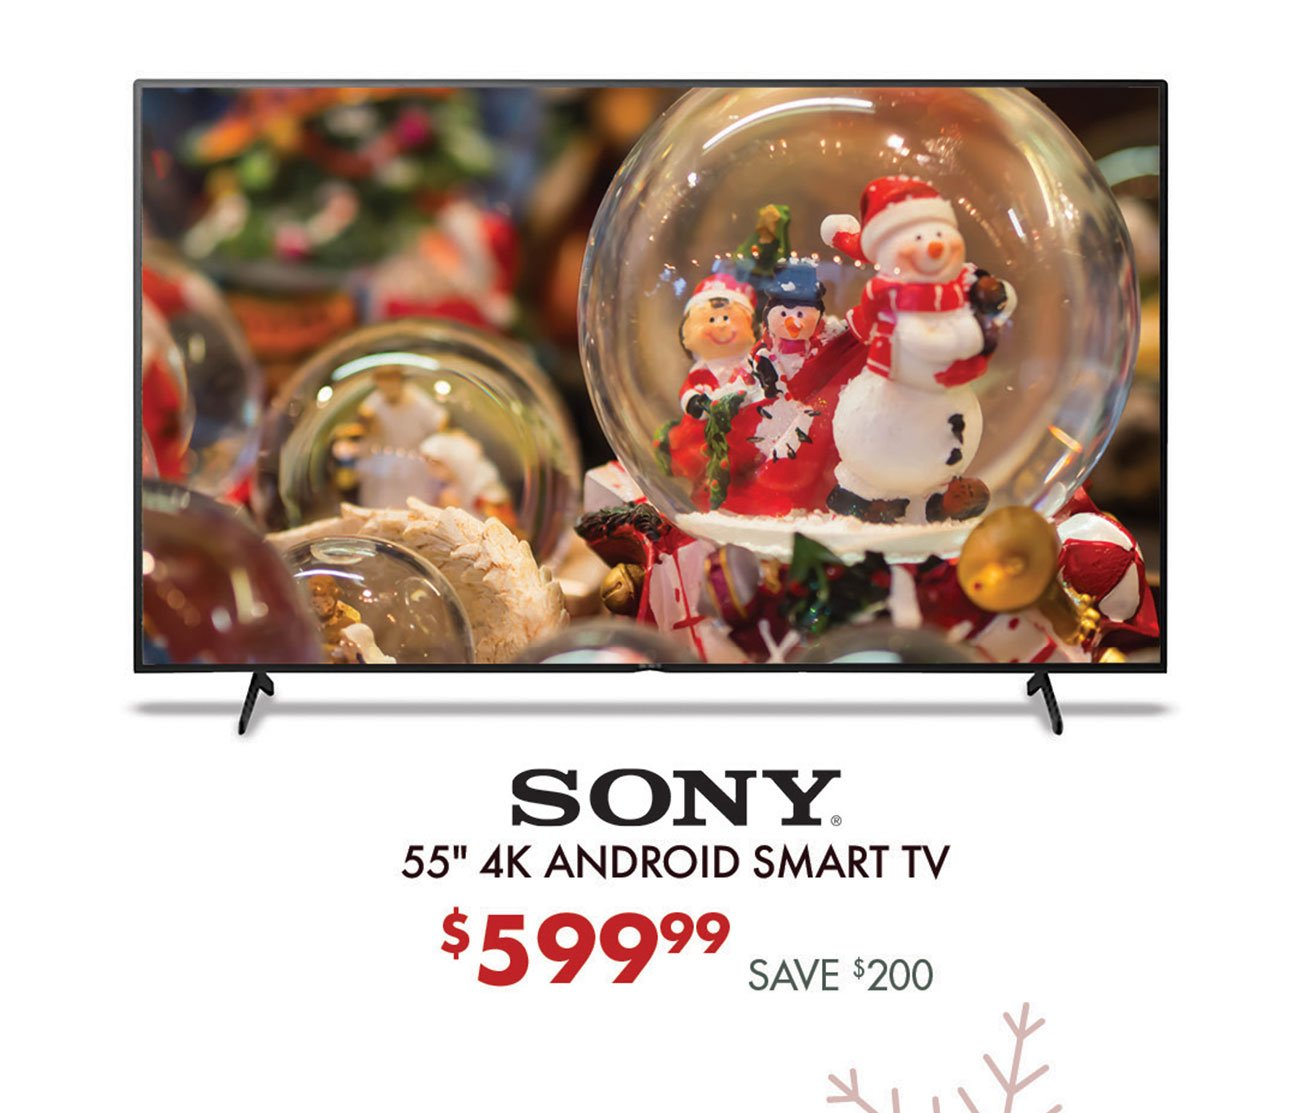 Sony-4K-Android-Smart-TV-UIRV